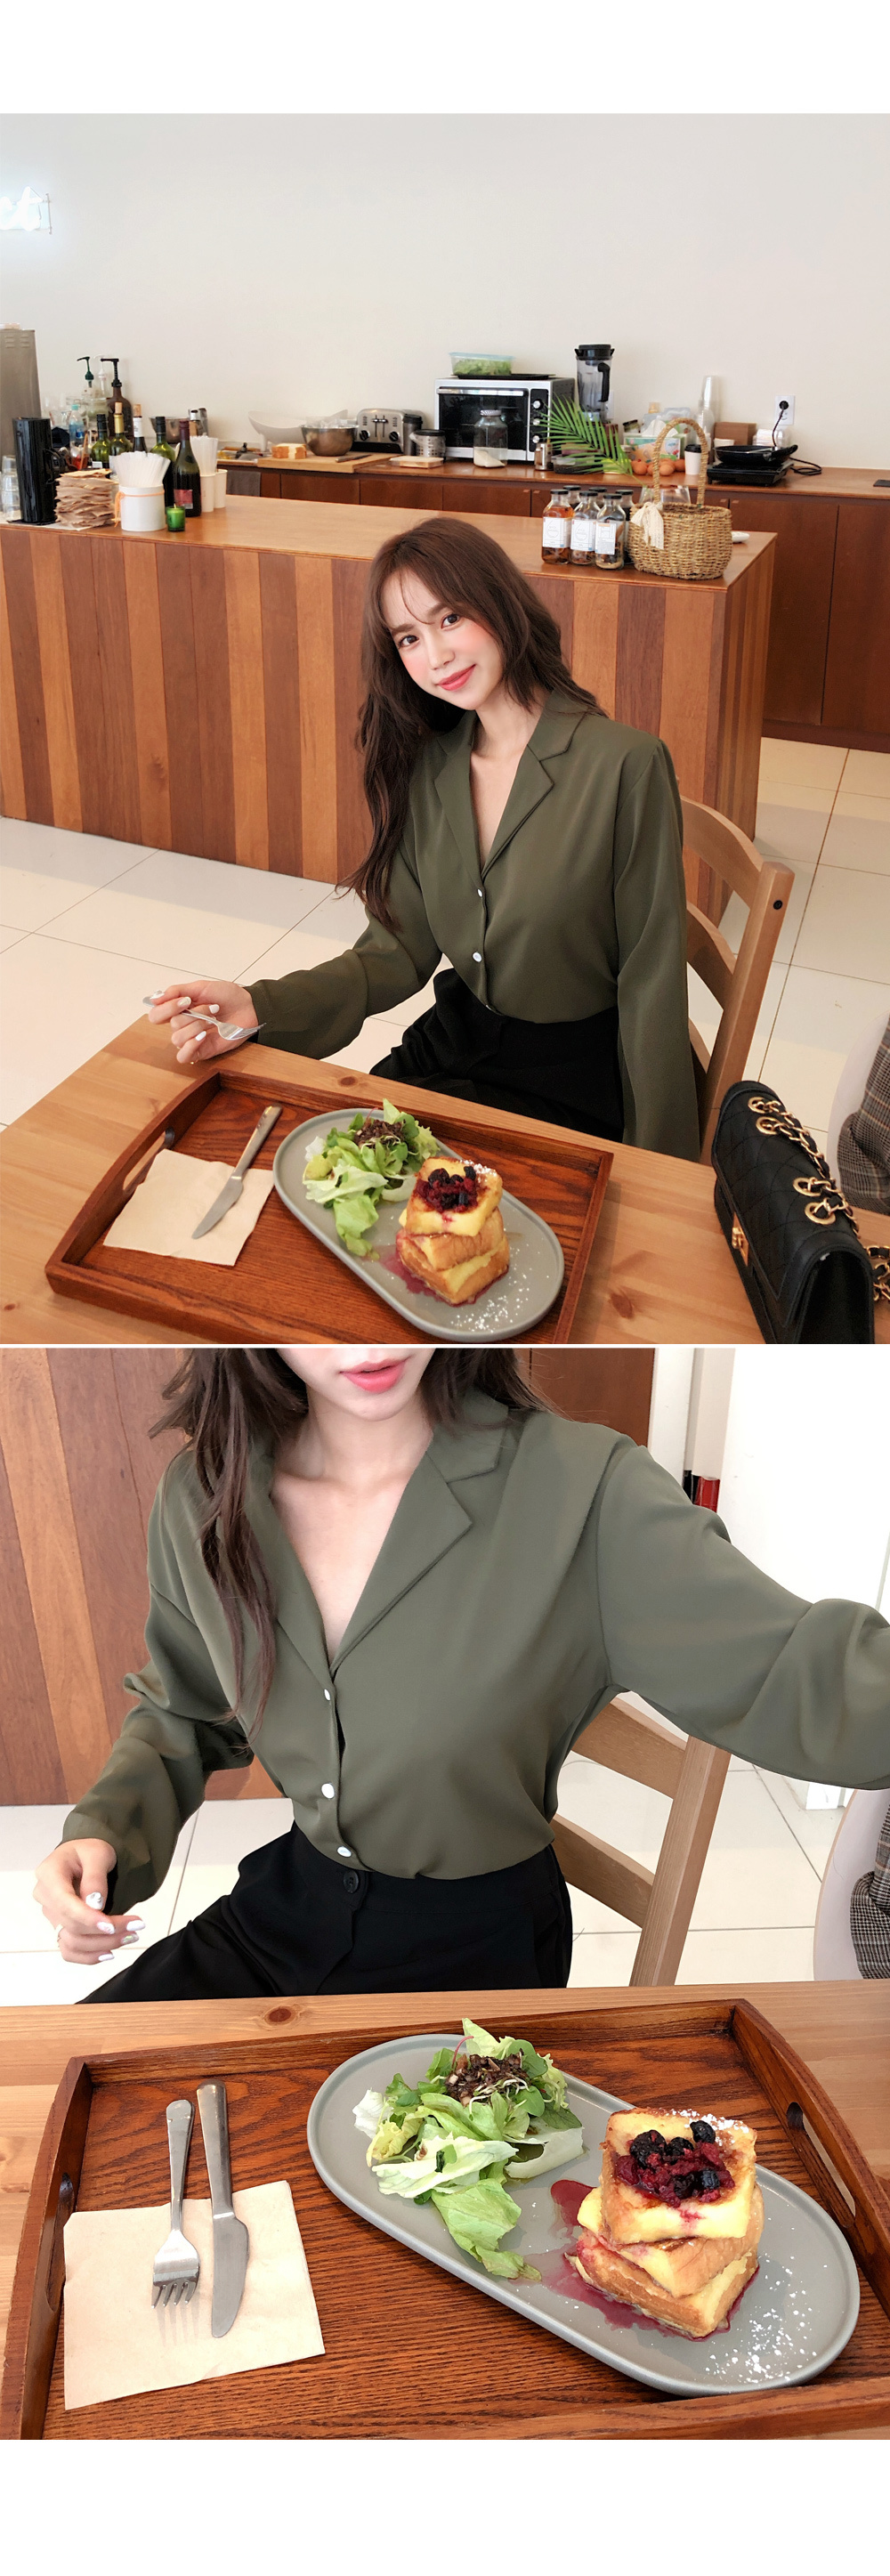 Normal blouse